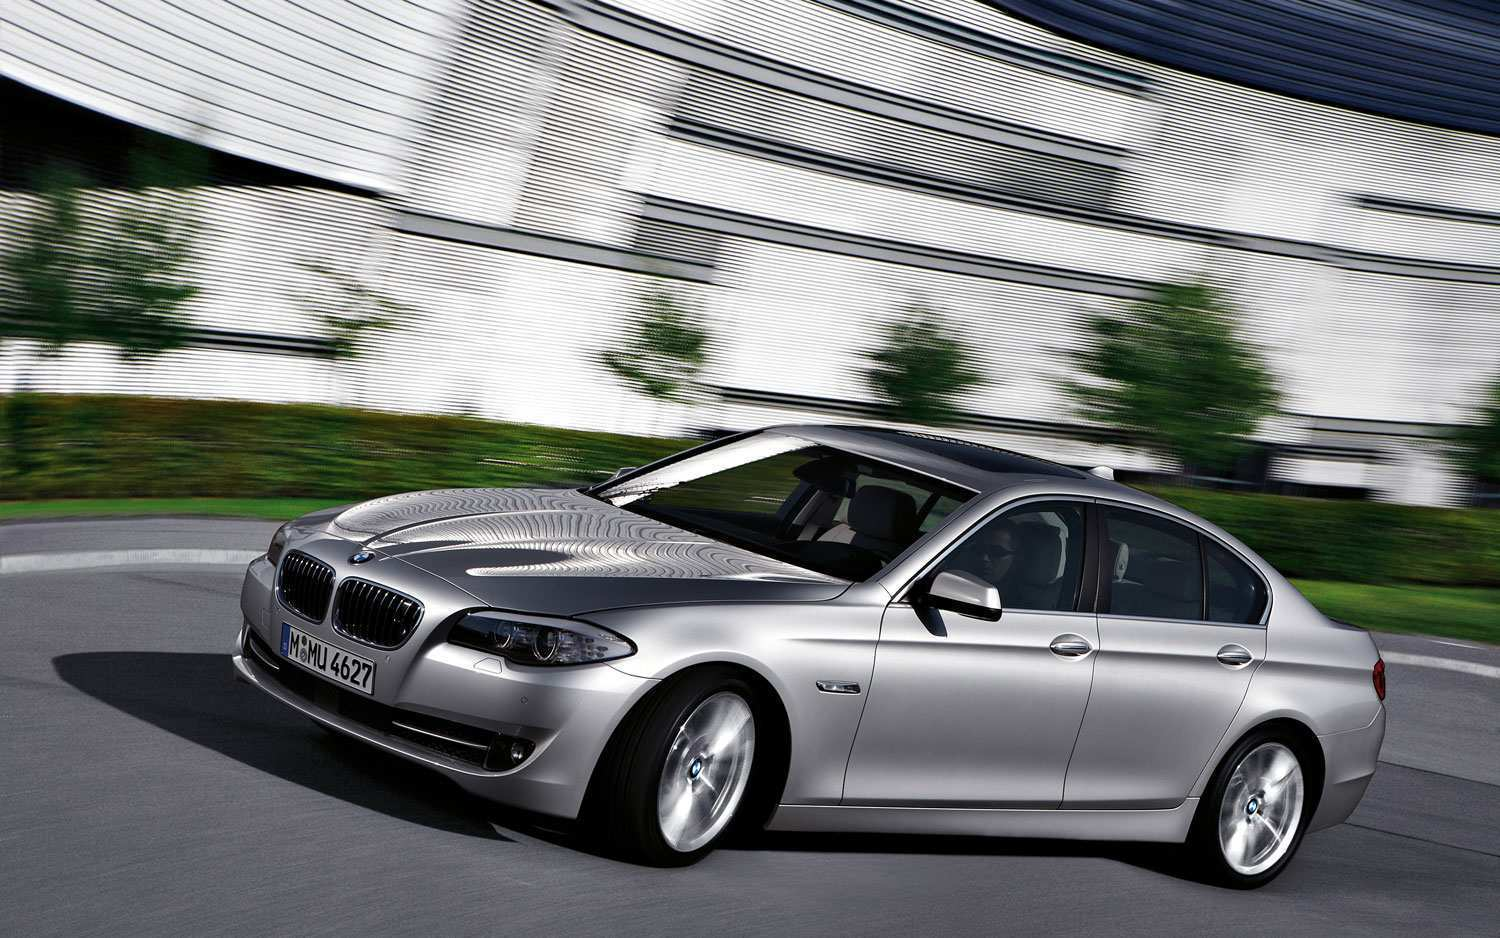 46 Concept of Bmw 535I 2020 Overview with Bmw 535I 2020